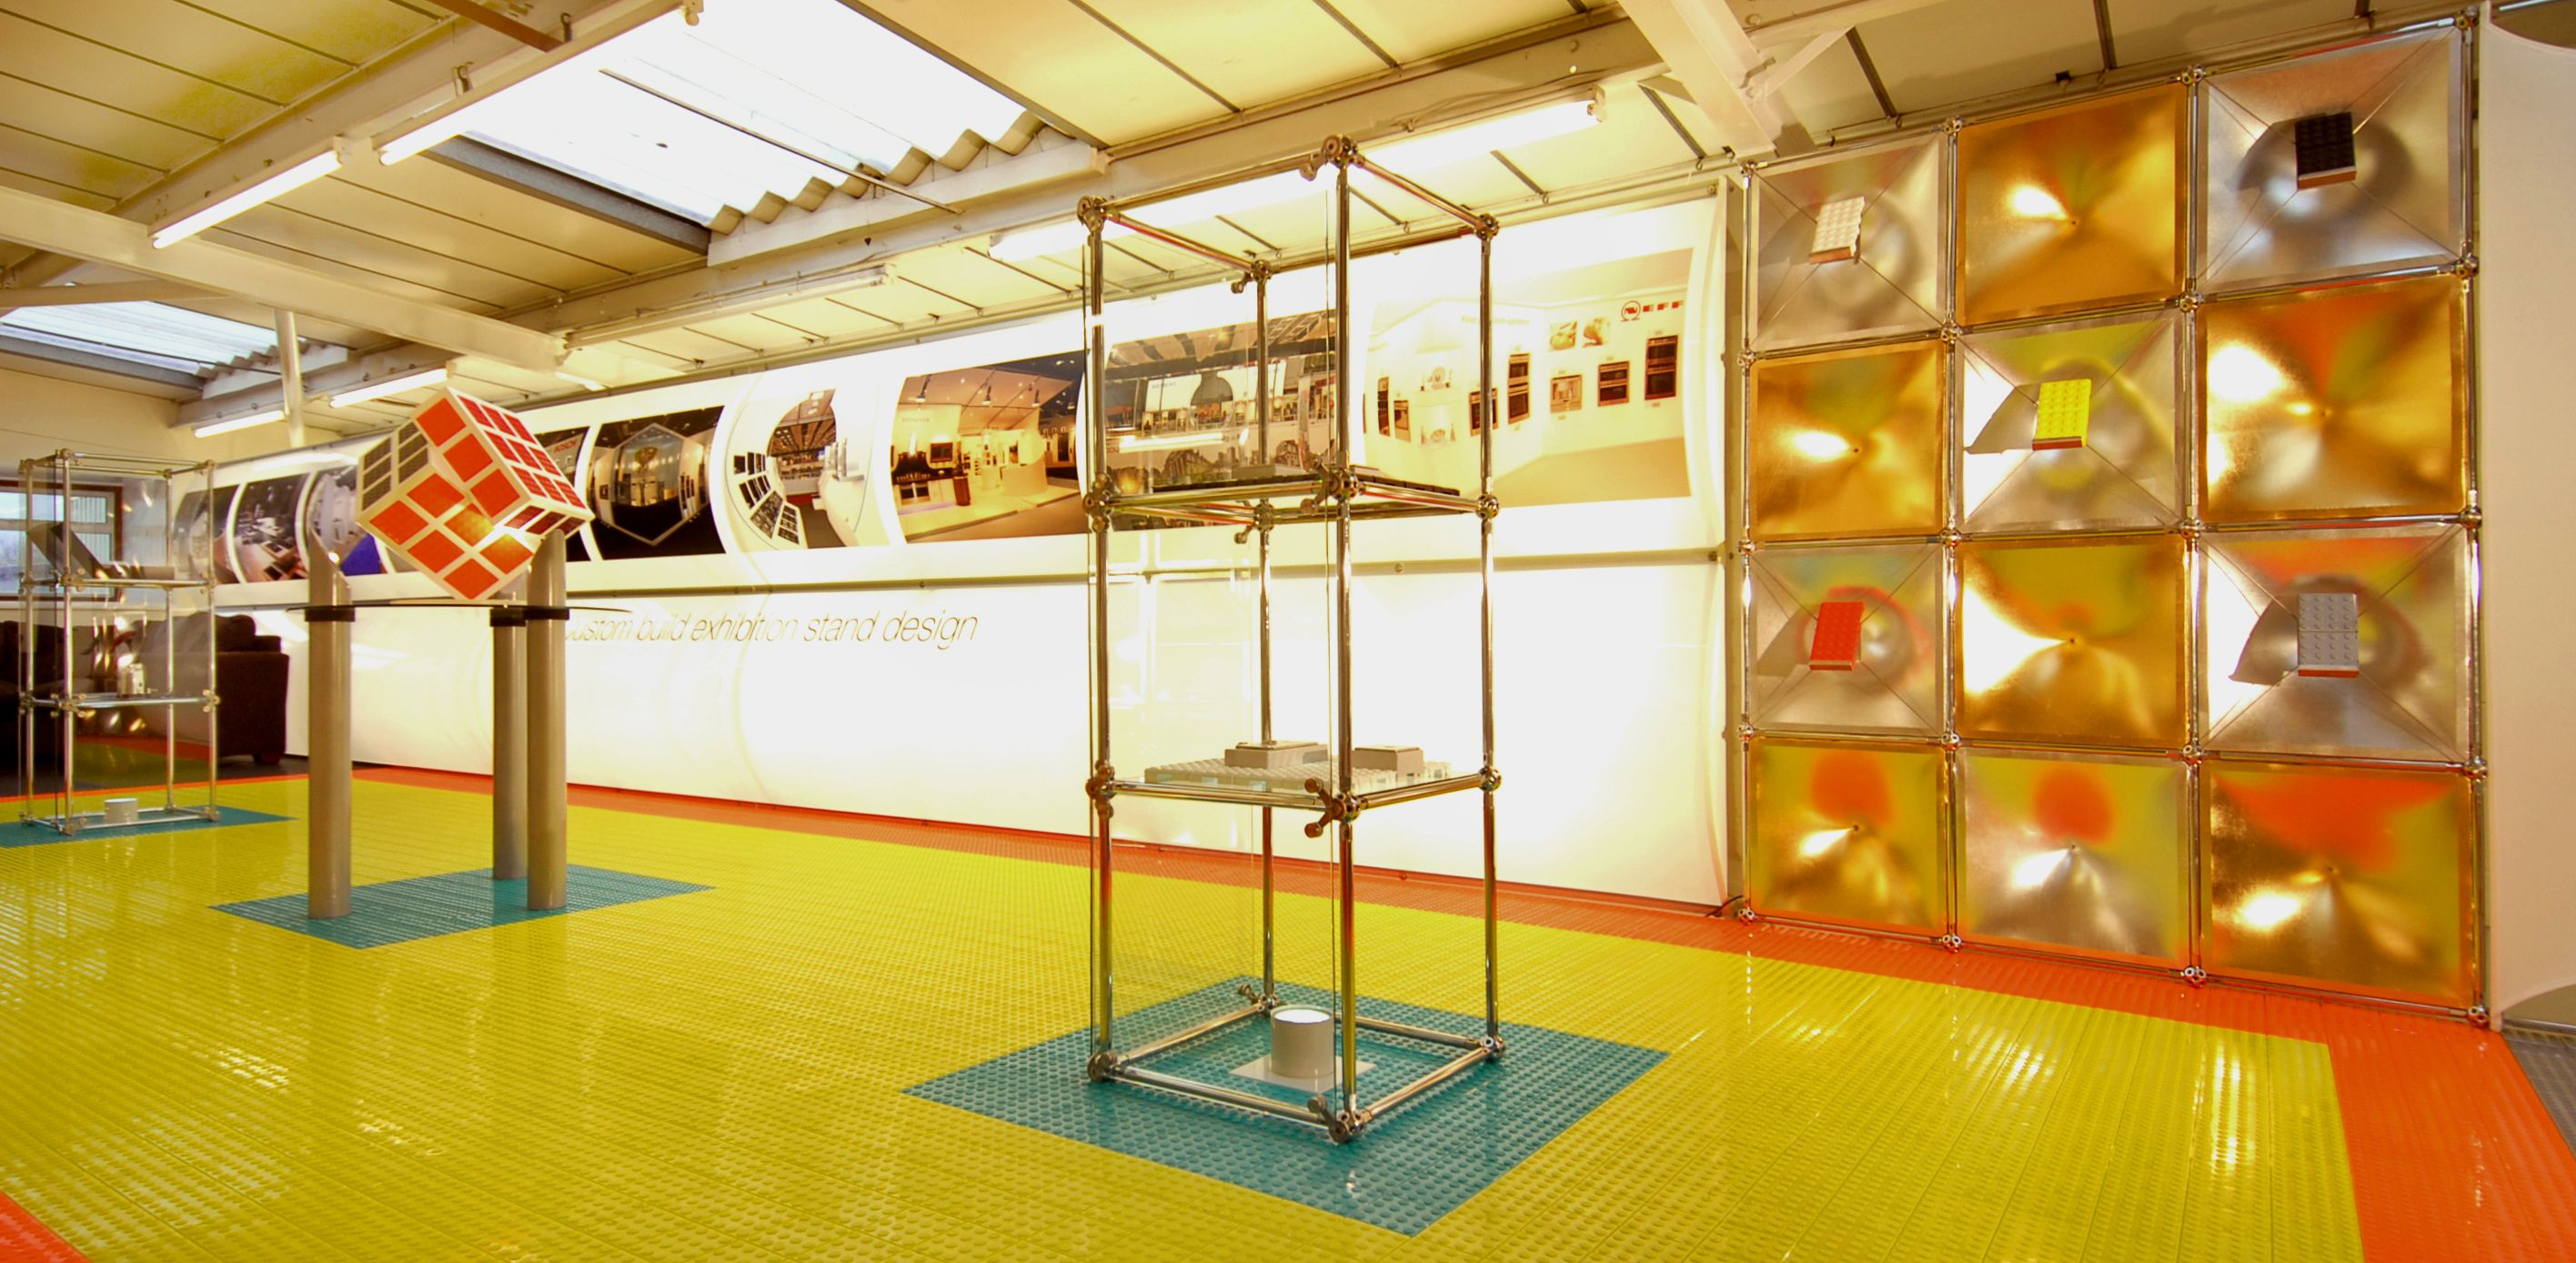 Cable management modular  flooring tiles for exhibition and retail displays. #exhibitions #exhibitiondesign #exhibitionflooring